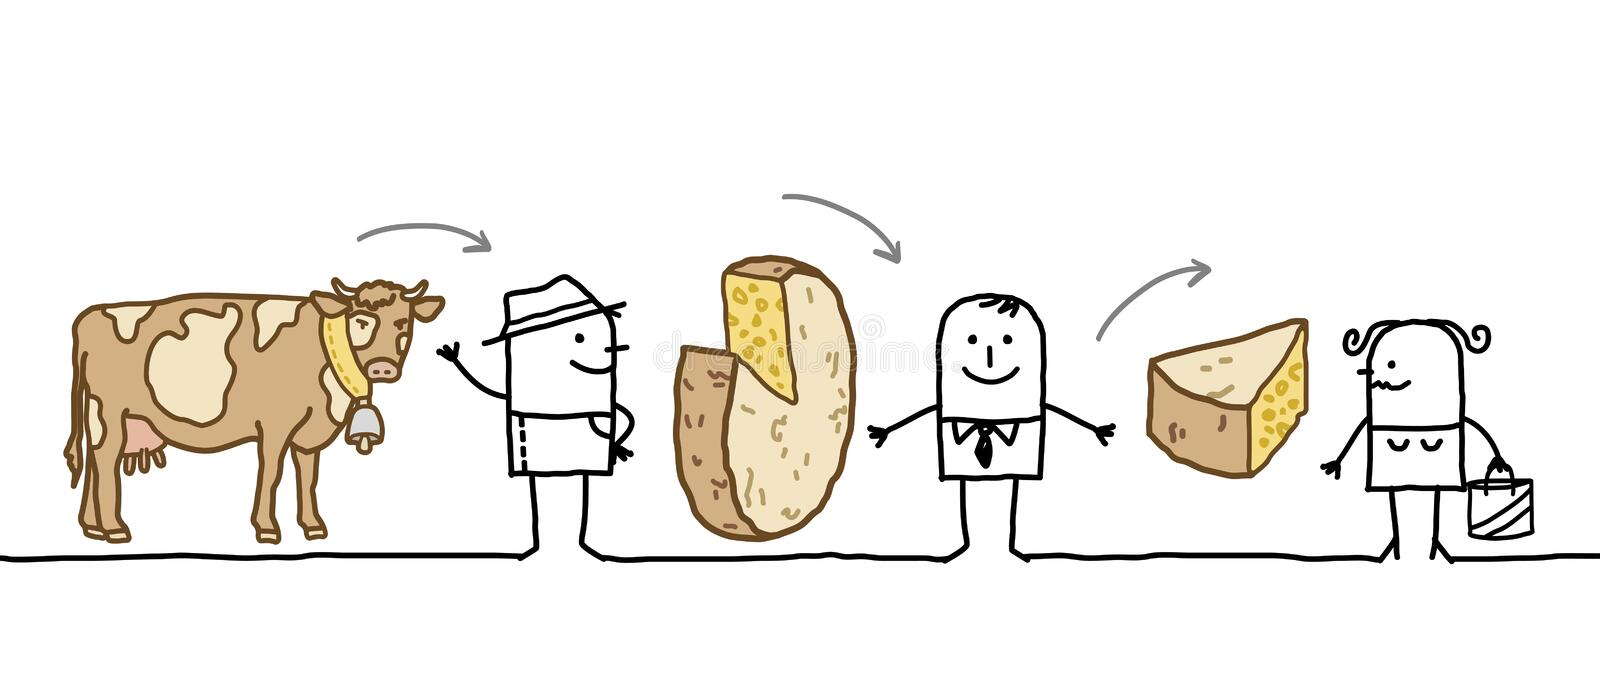 Cartoon Characters - Cheese Production Chain royalty free illustration